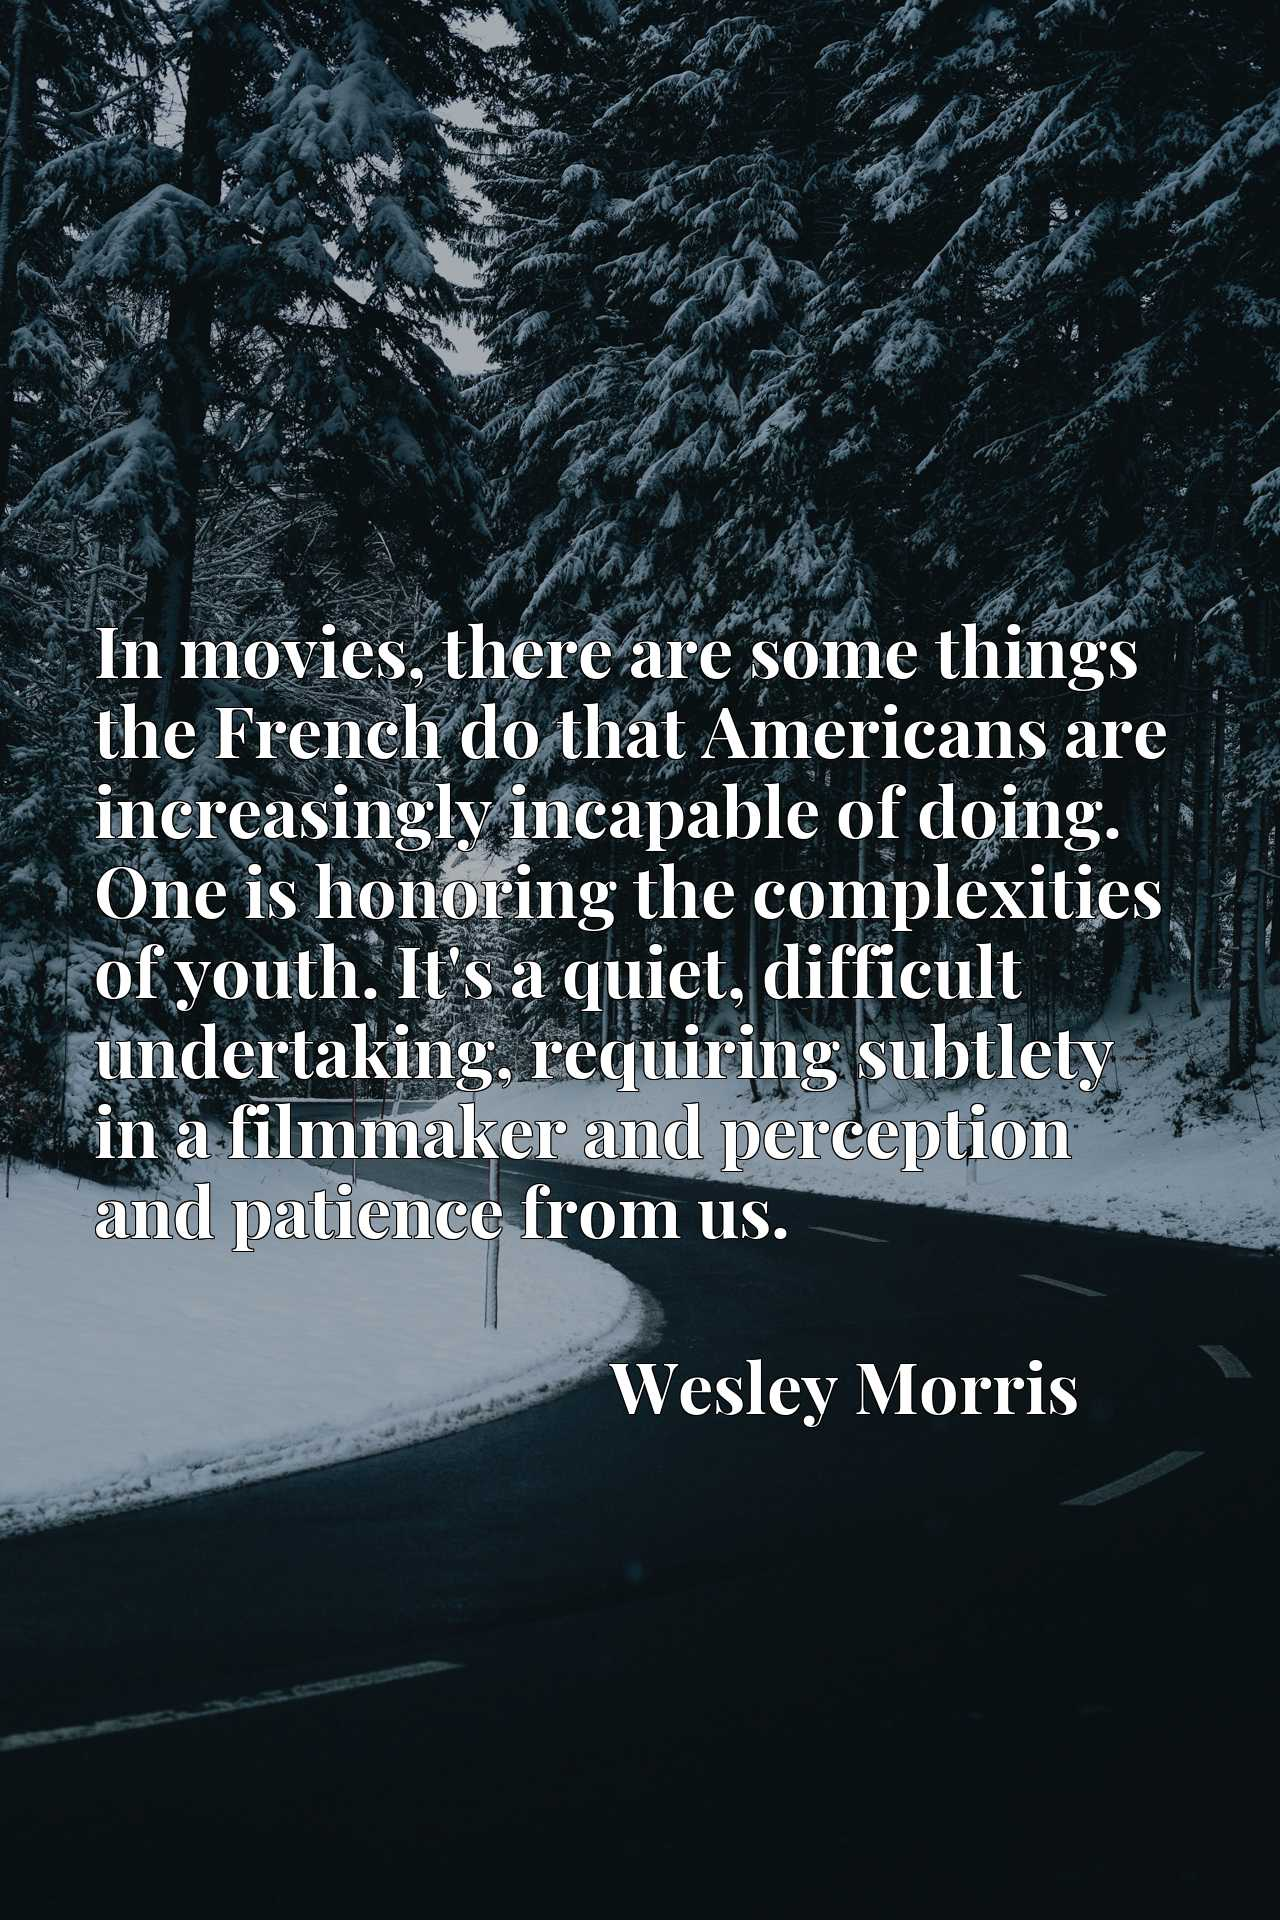 In movies, there are some things the French do that Americans are increasingly incapable of doing. One is honoring the complexities of youth. It's a quiet, difficult undertaking, requiring subtlety in a filmmaker and perception and patience from us.